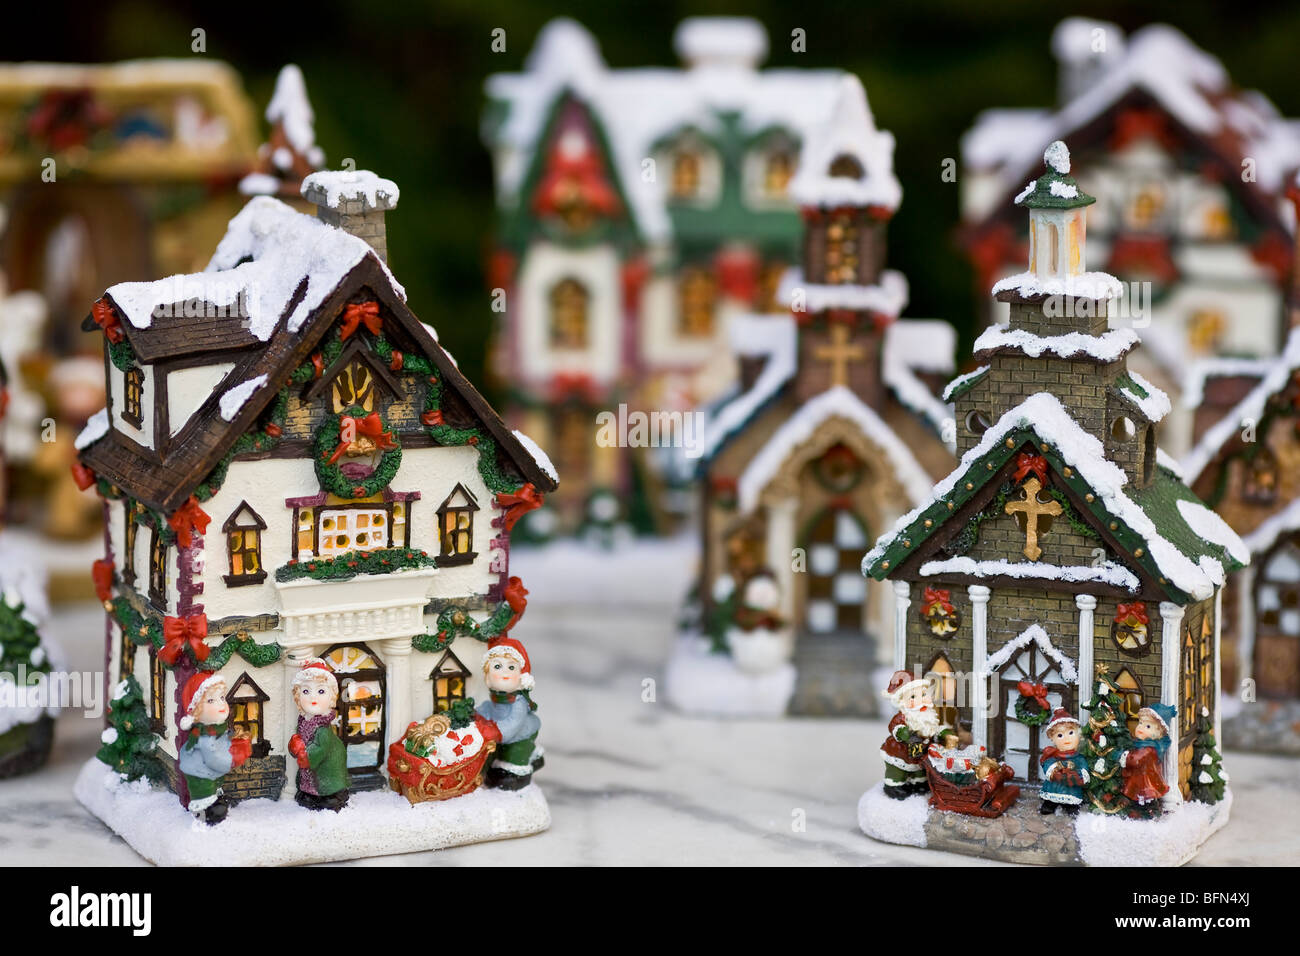 christmas model village landscape stock image - Miniature Christmas Village